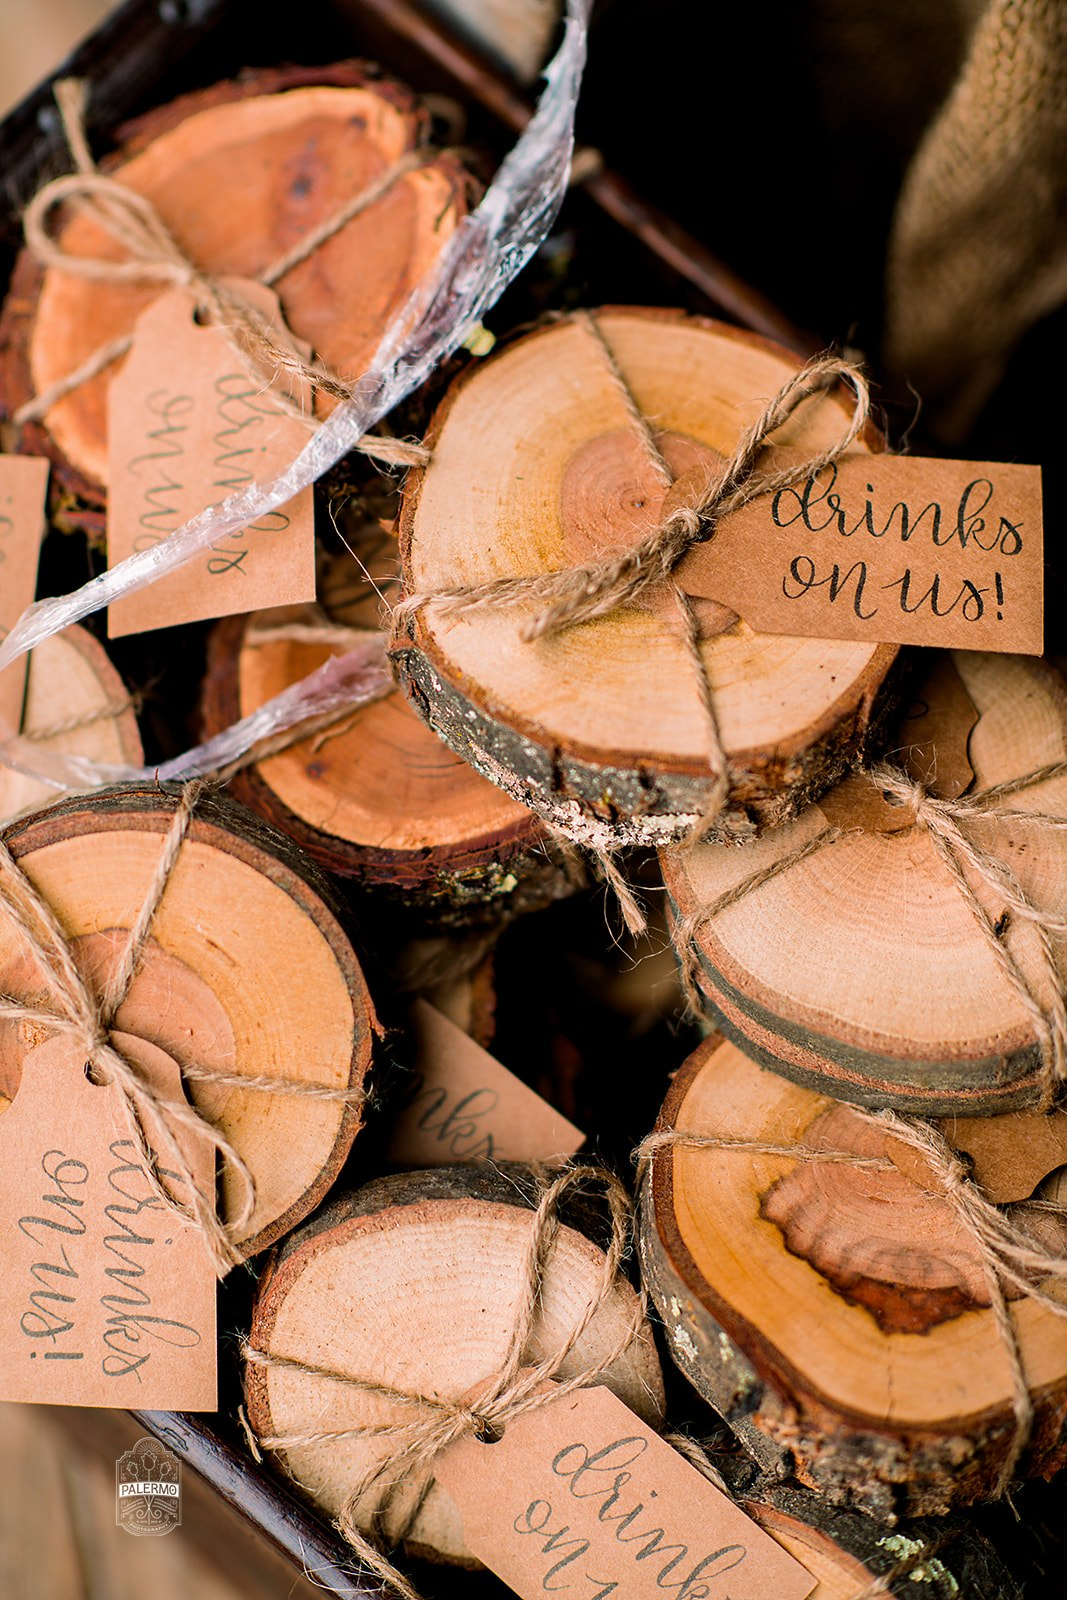 Rustic wedding favors for fall barn wedding in Pittsburgh, PA planned by Exhale Events. Find more wedding inspiration at exhale-events.com!